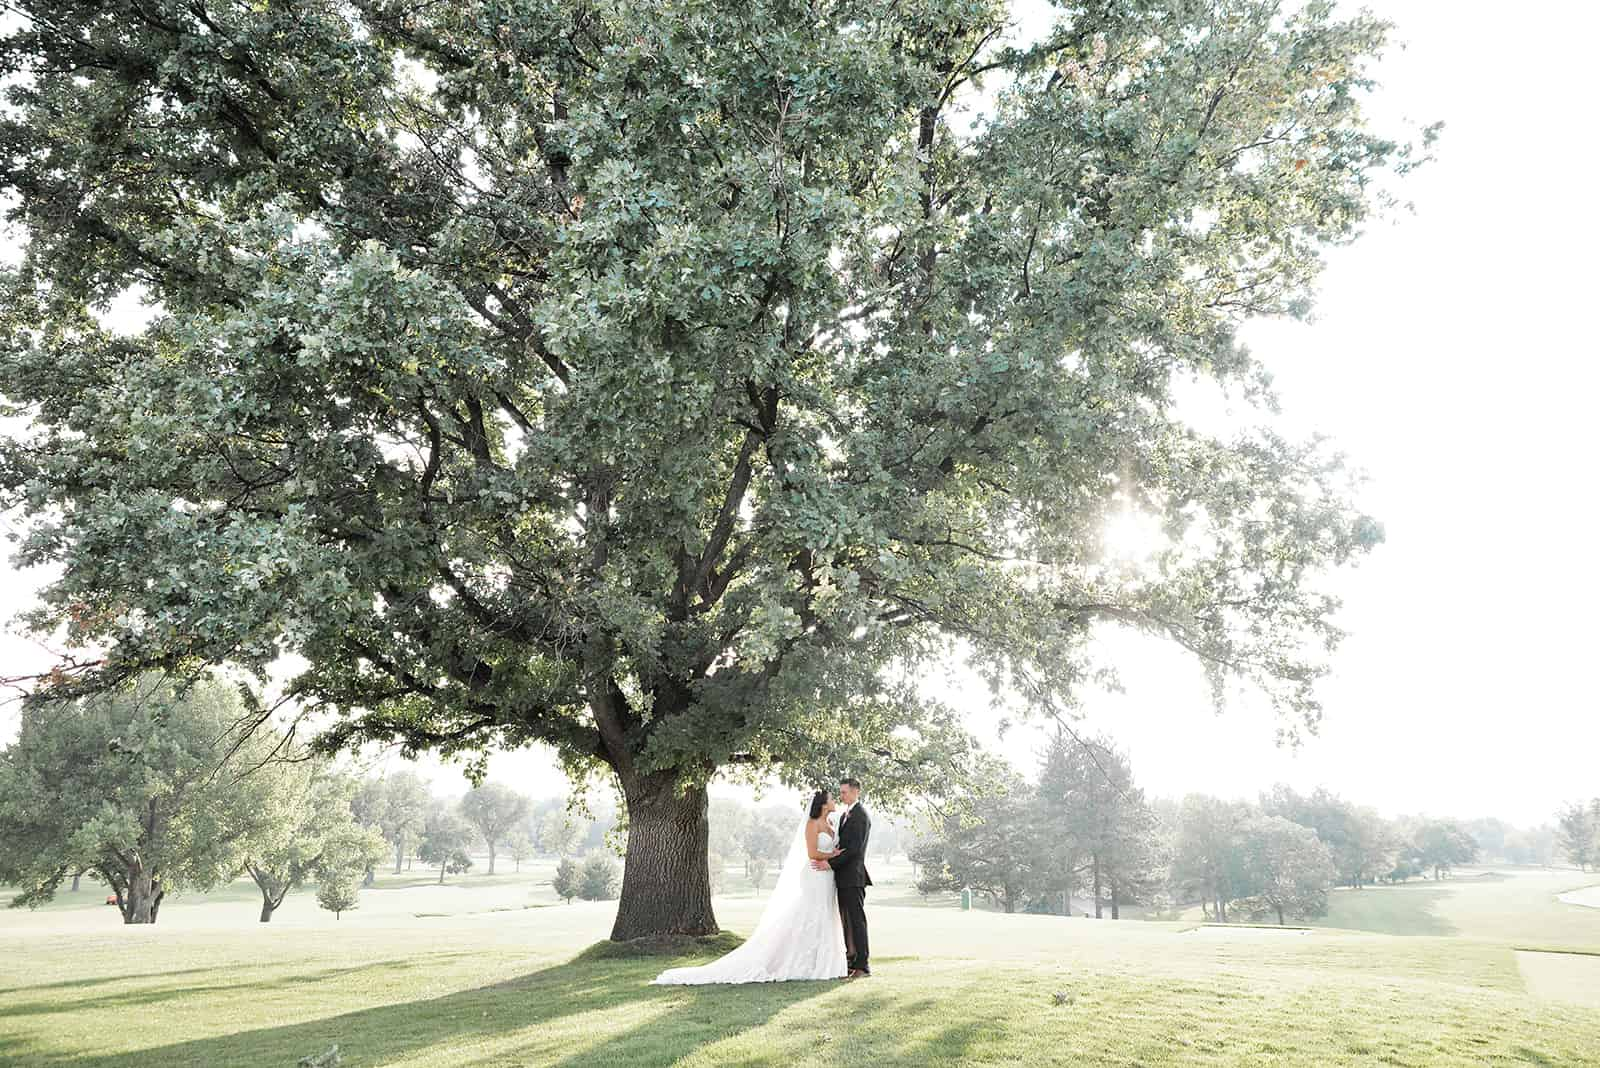 Married at Cherry Hills Country Club